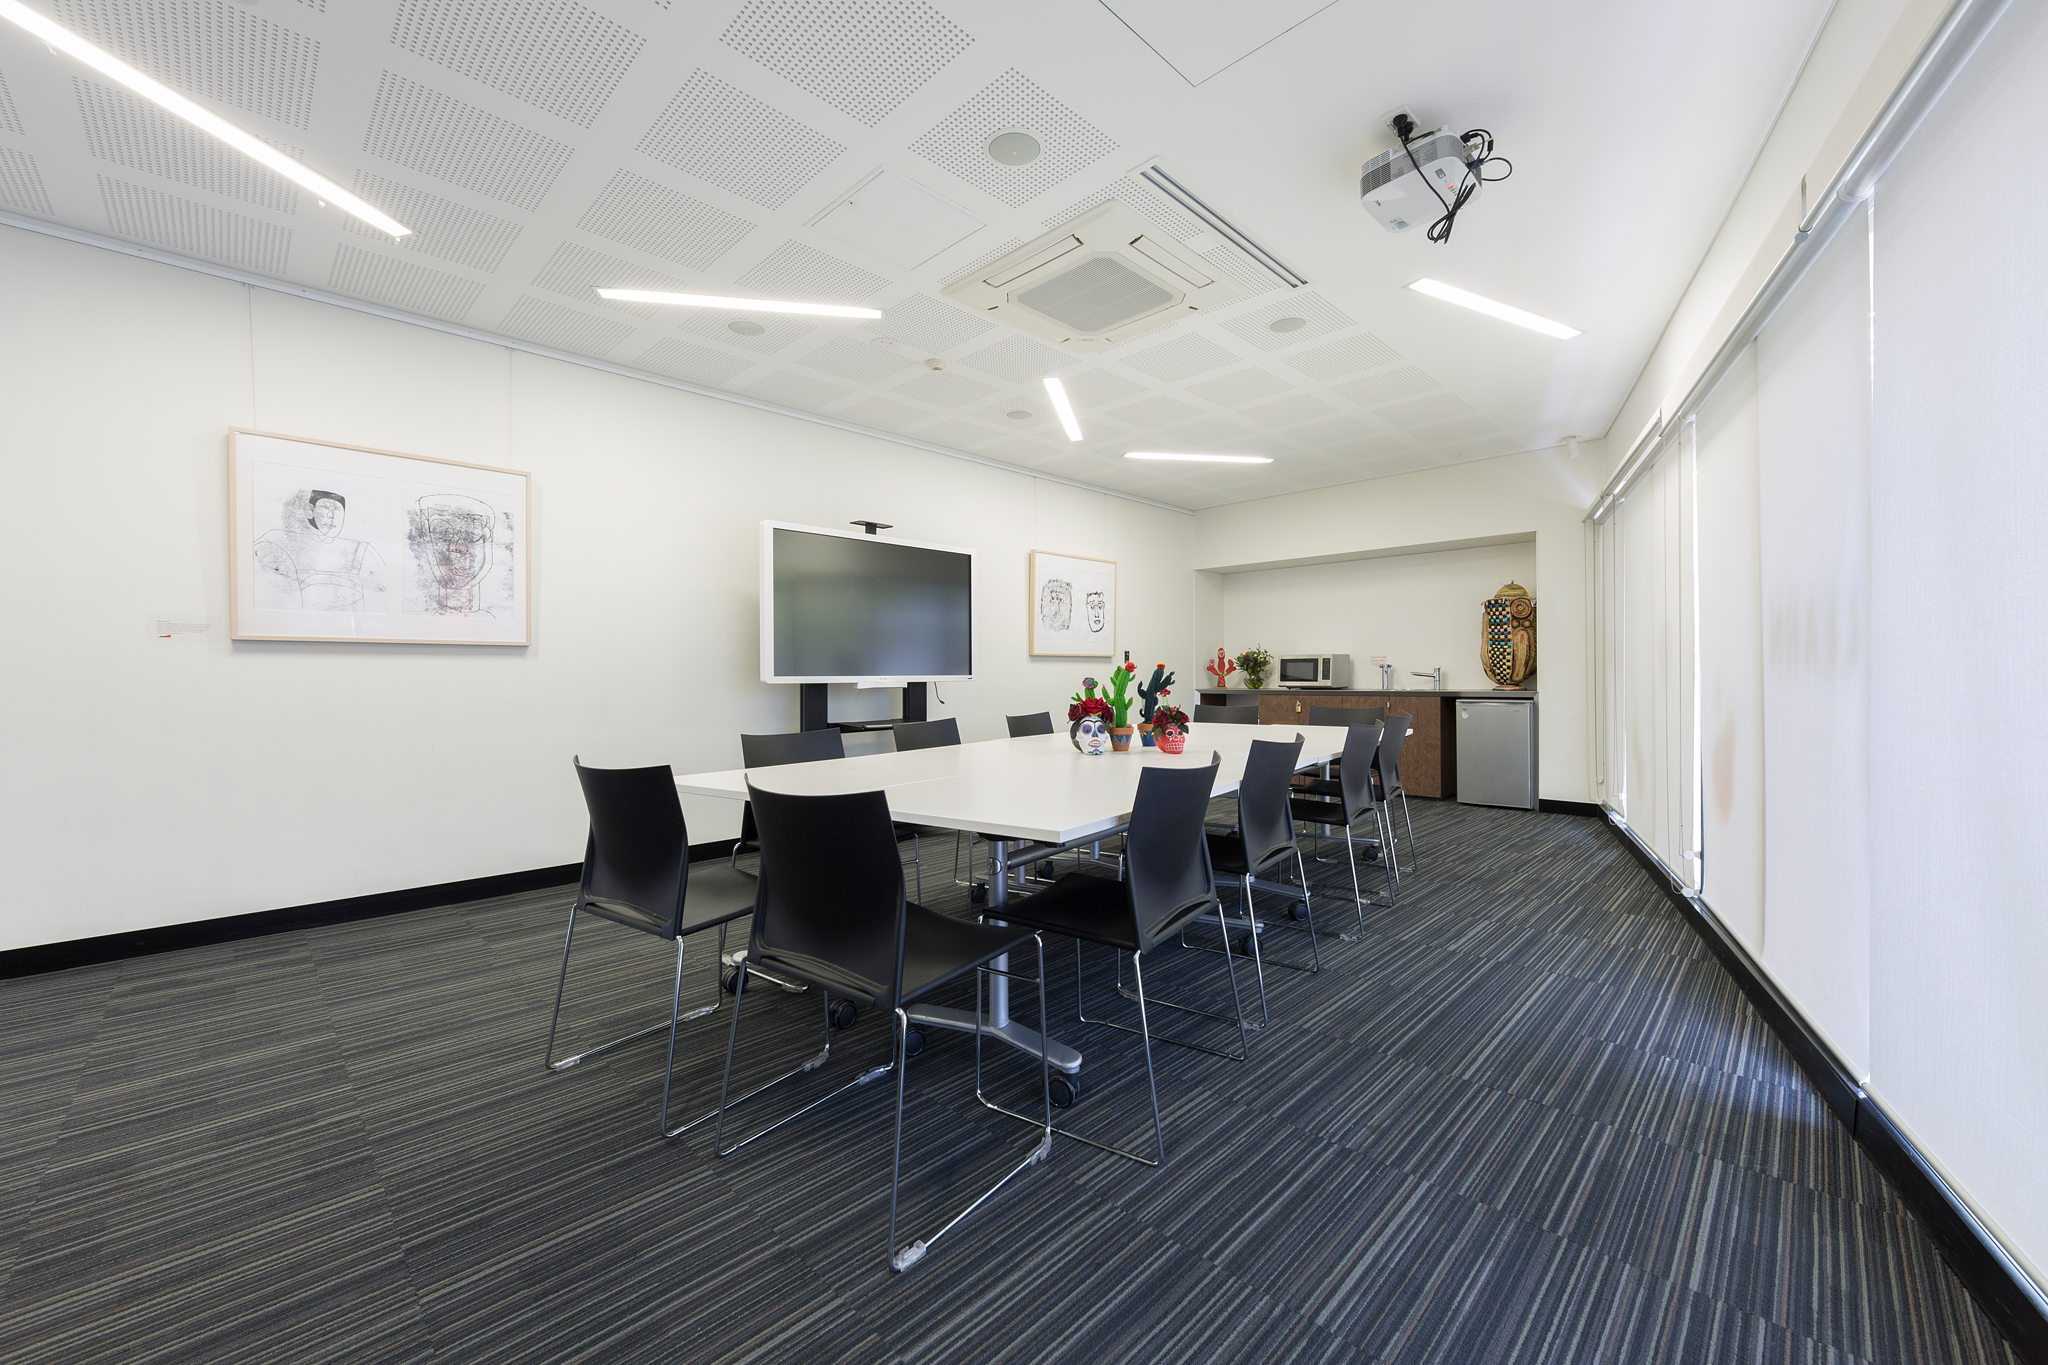 1311_belcoartscentre meeting room_LOWRES_001